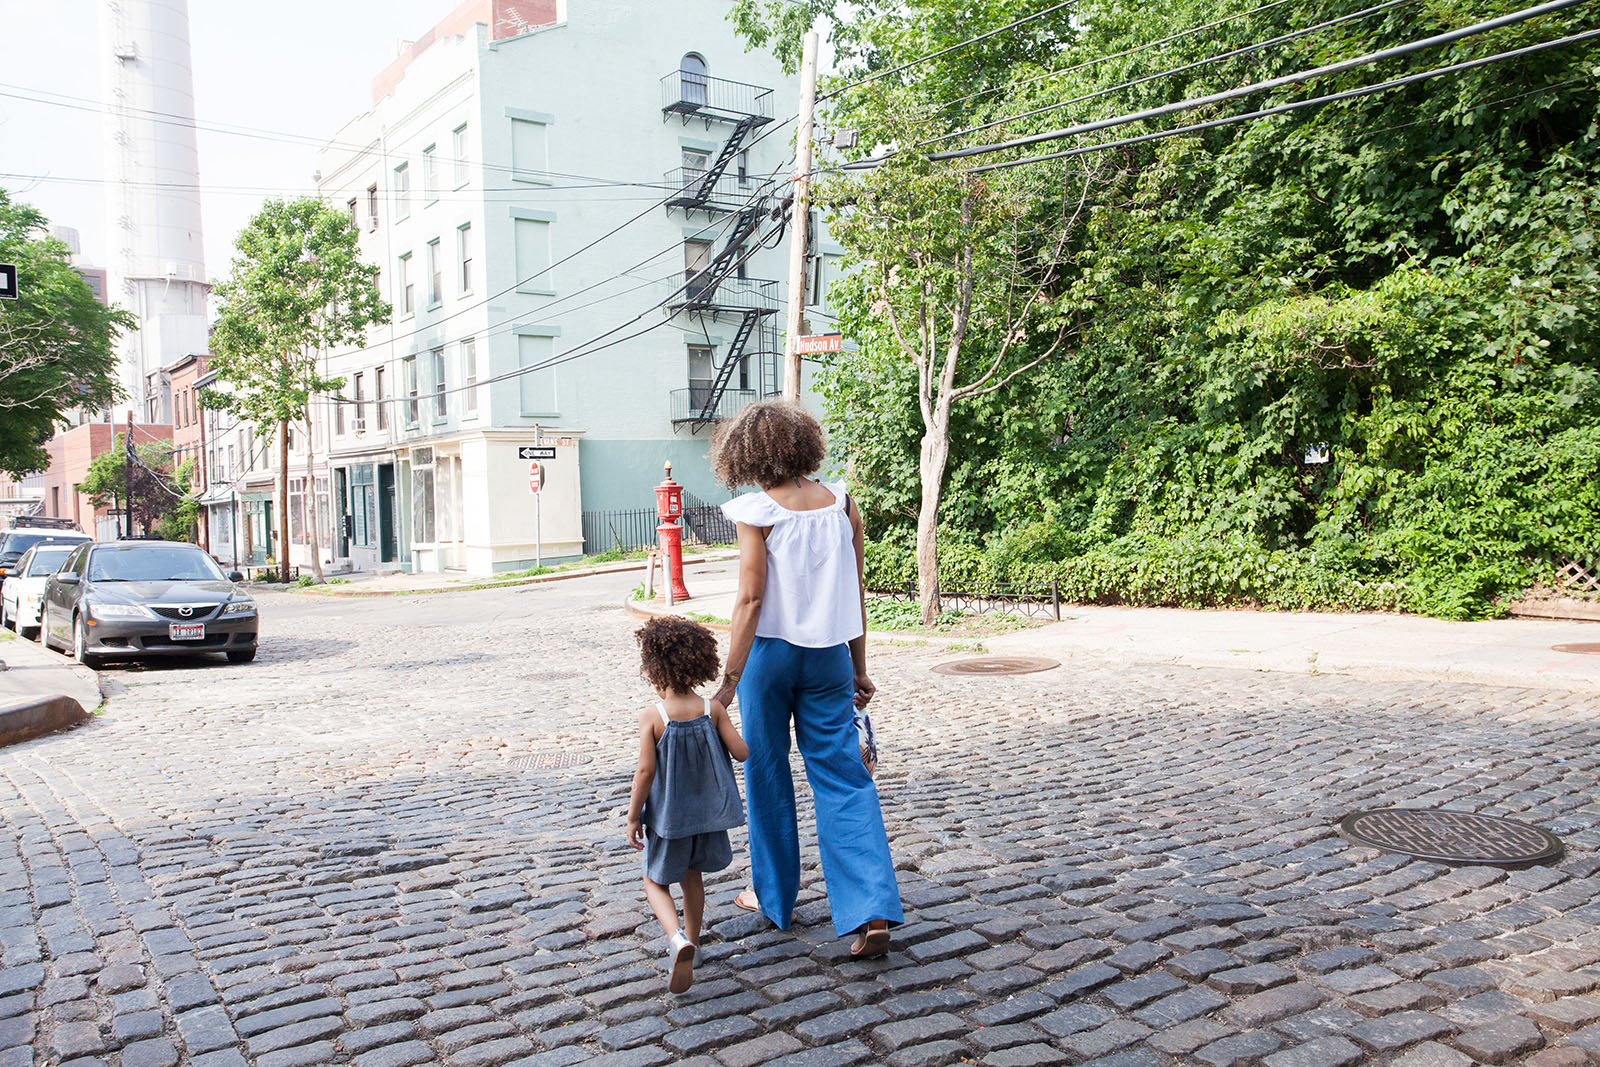 Mother and child walking on the street